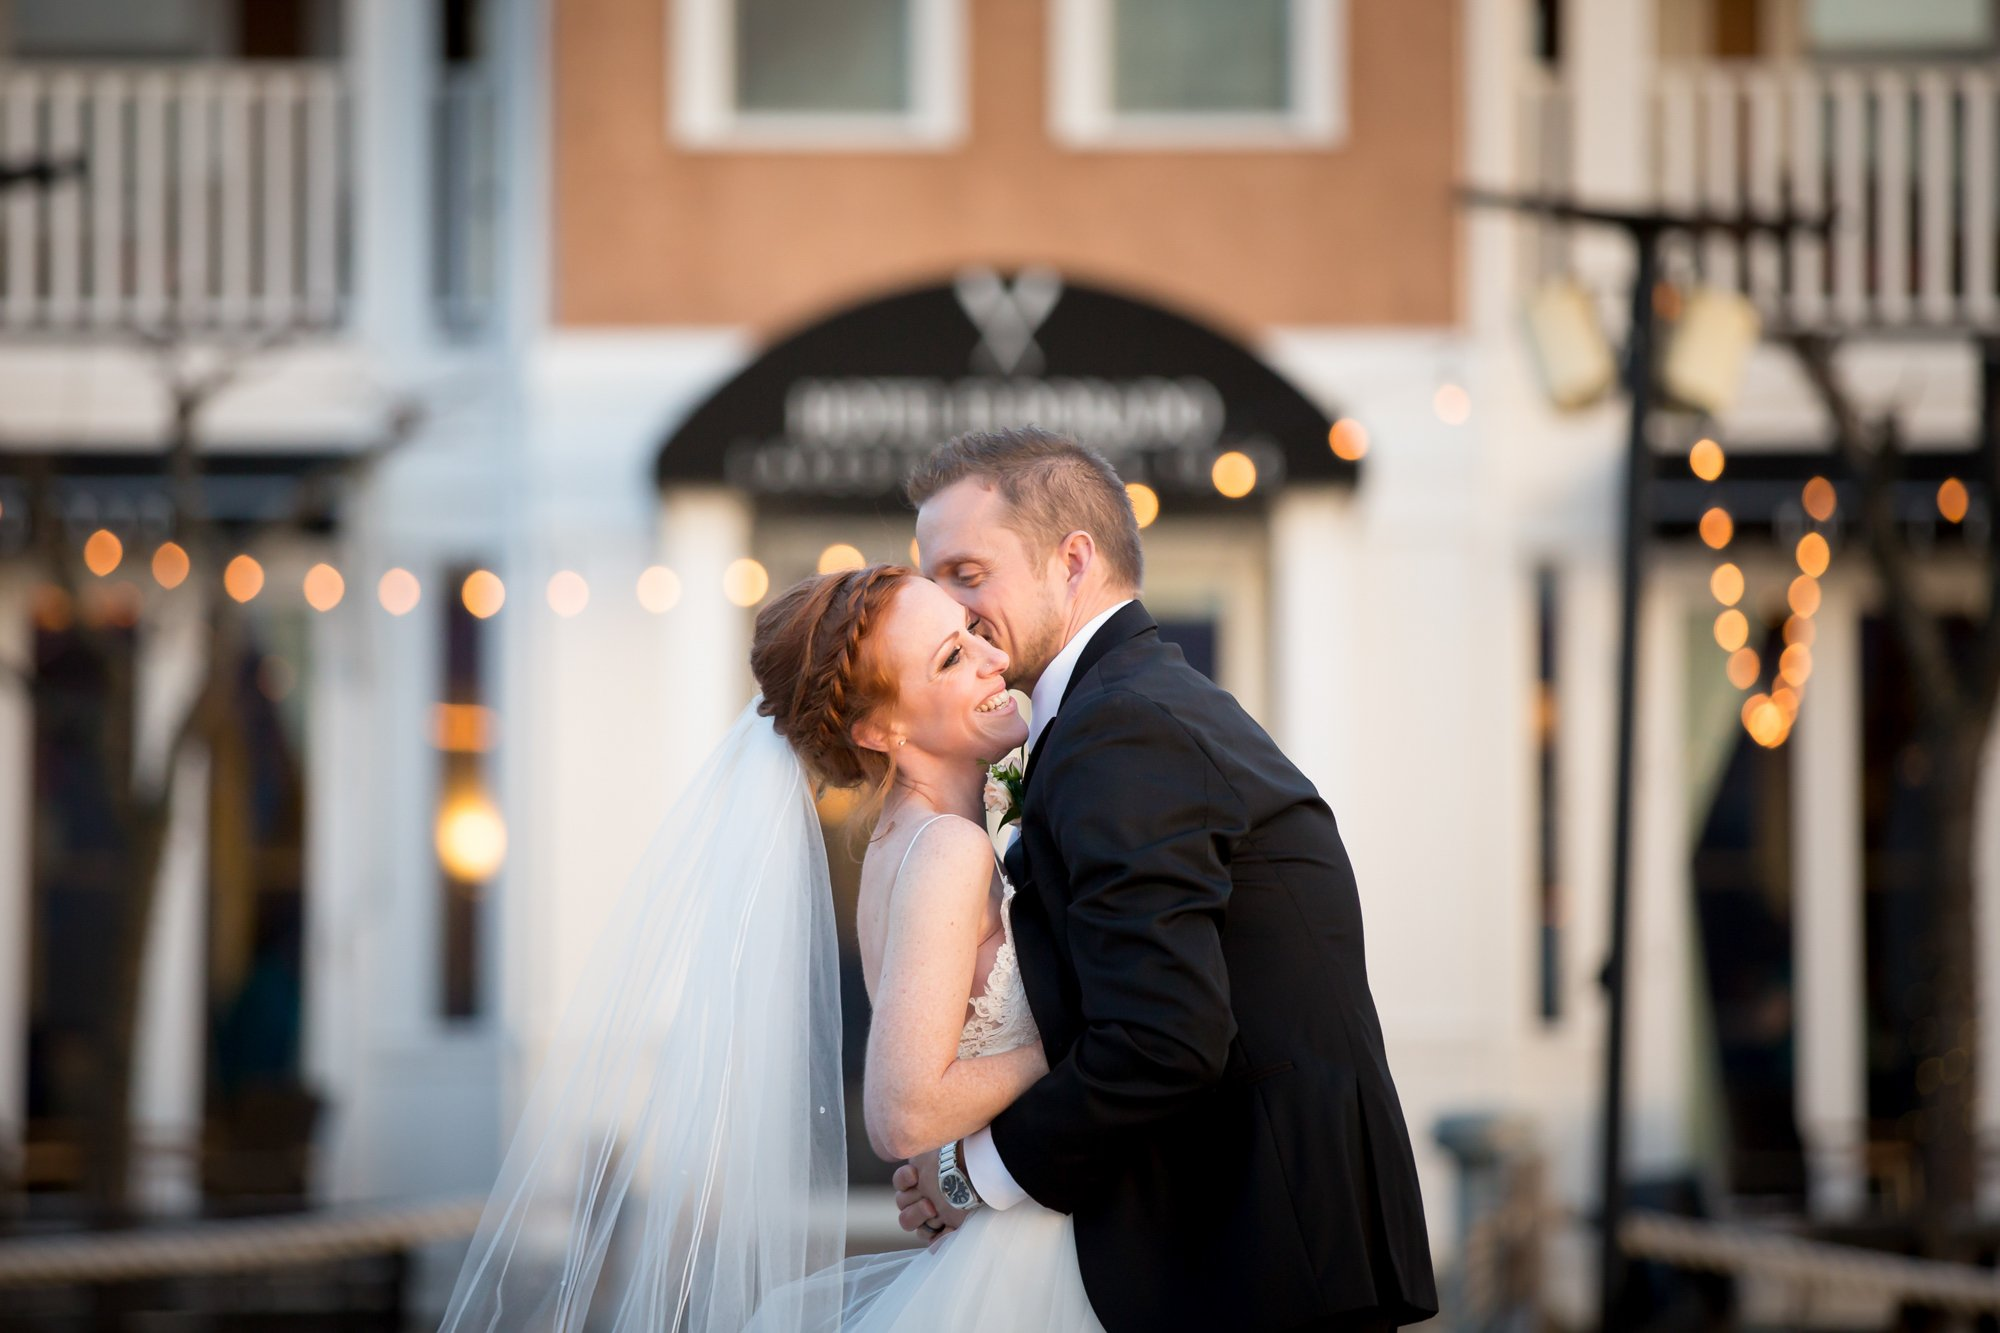 A bride and groom embracing in front of their wedding venue